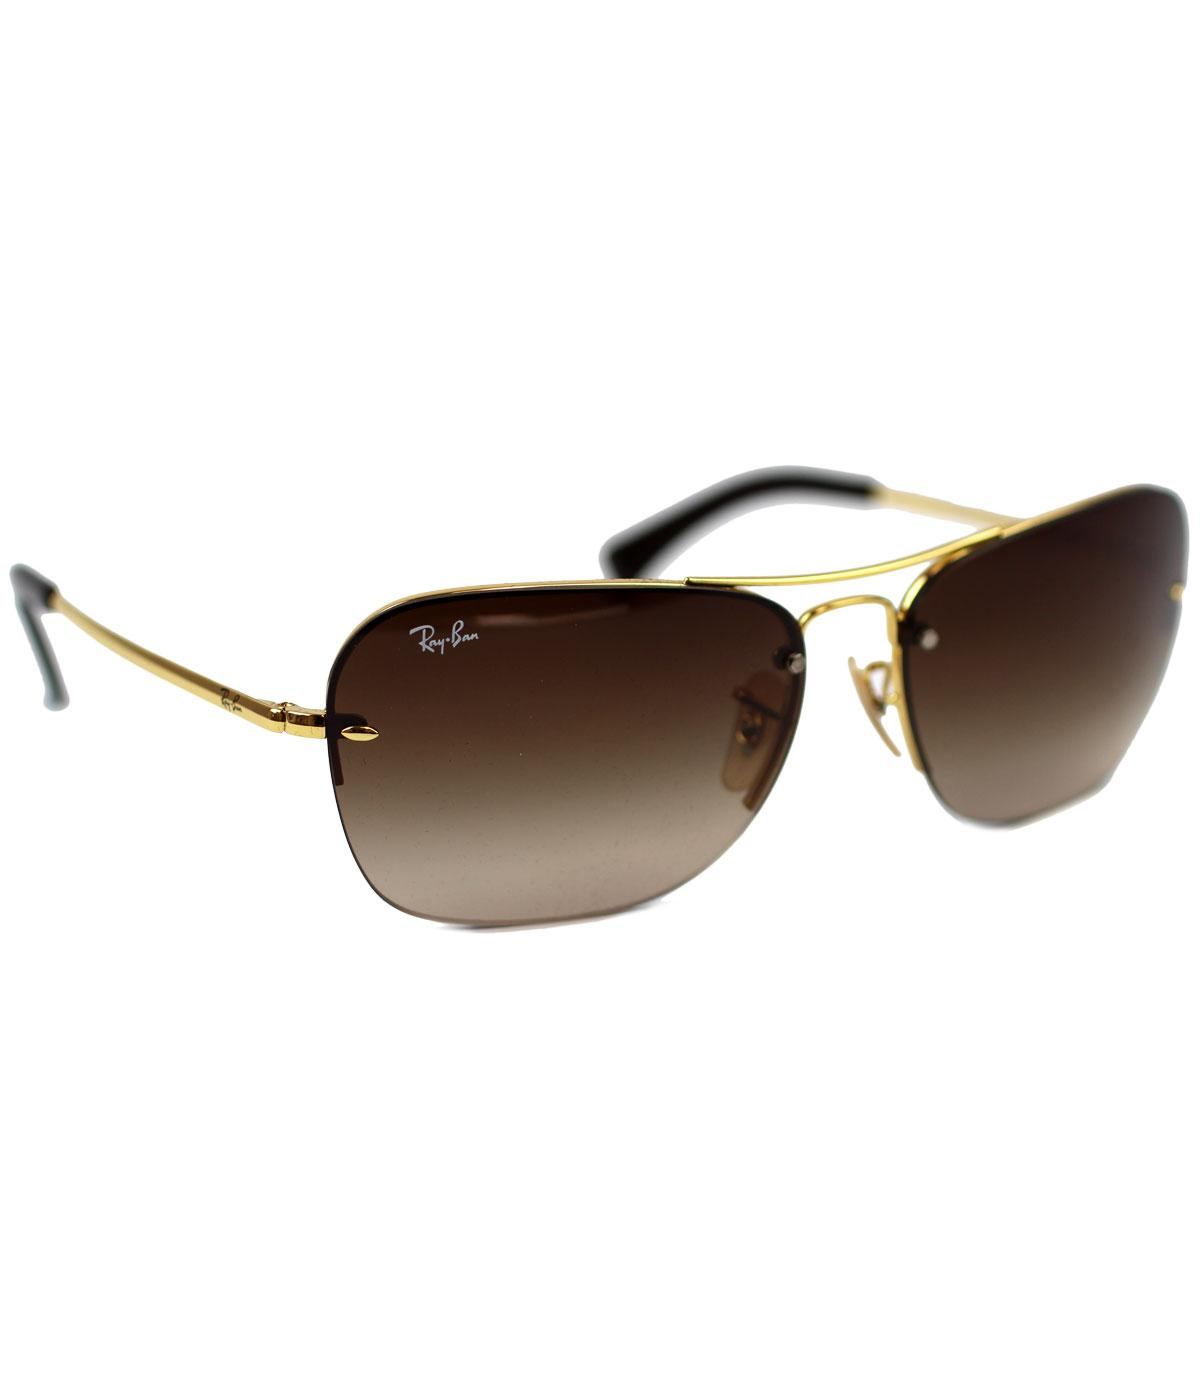 dc874b7978 RAY-BAN Retro 70s Pilot Aviator Sunglasses in Gold Brown